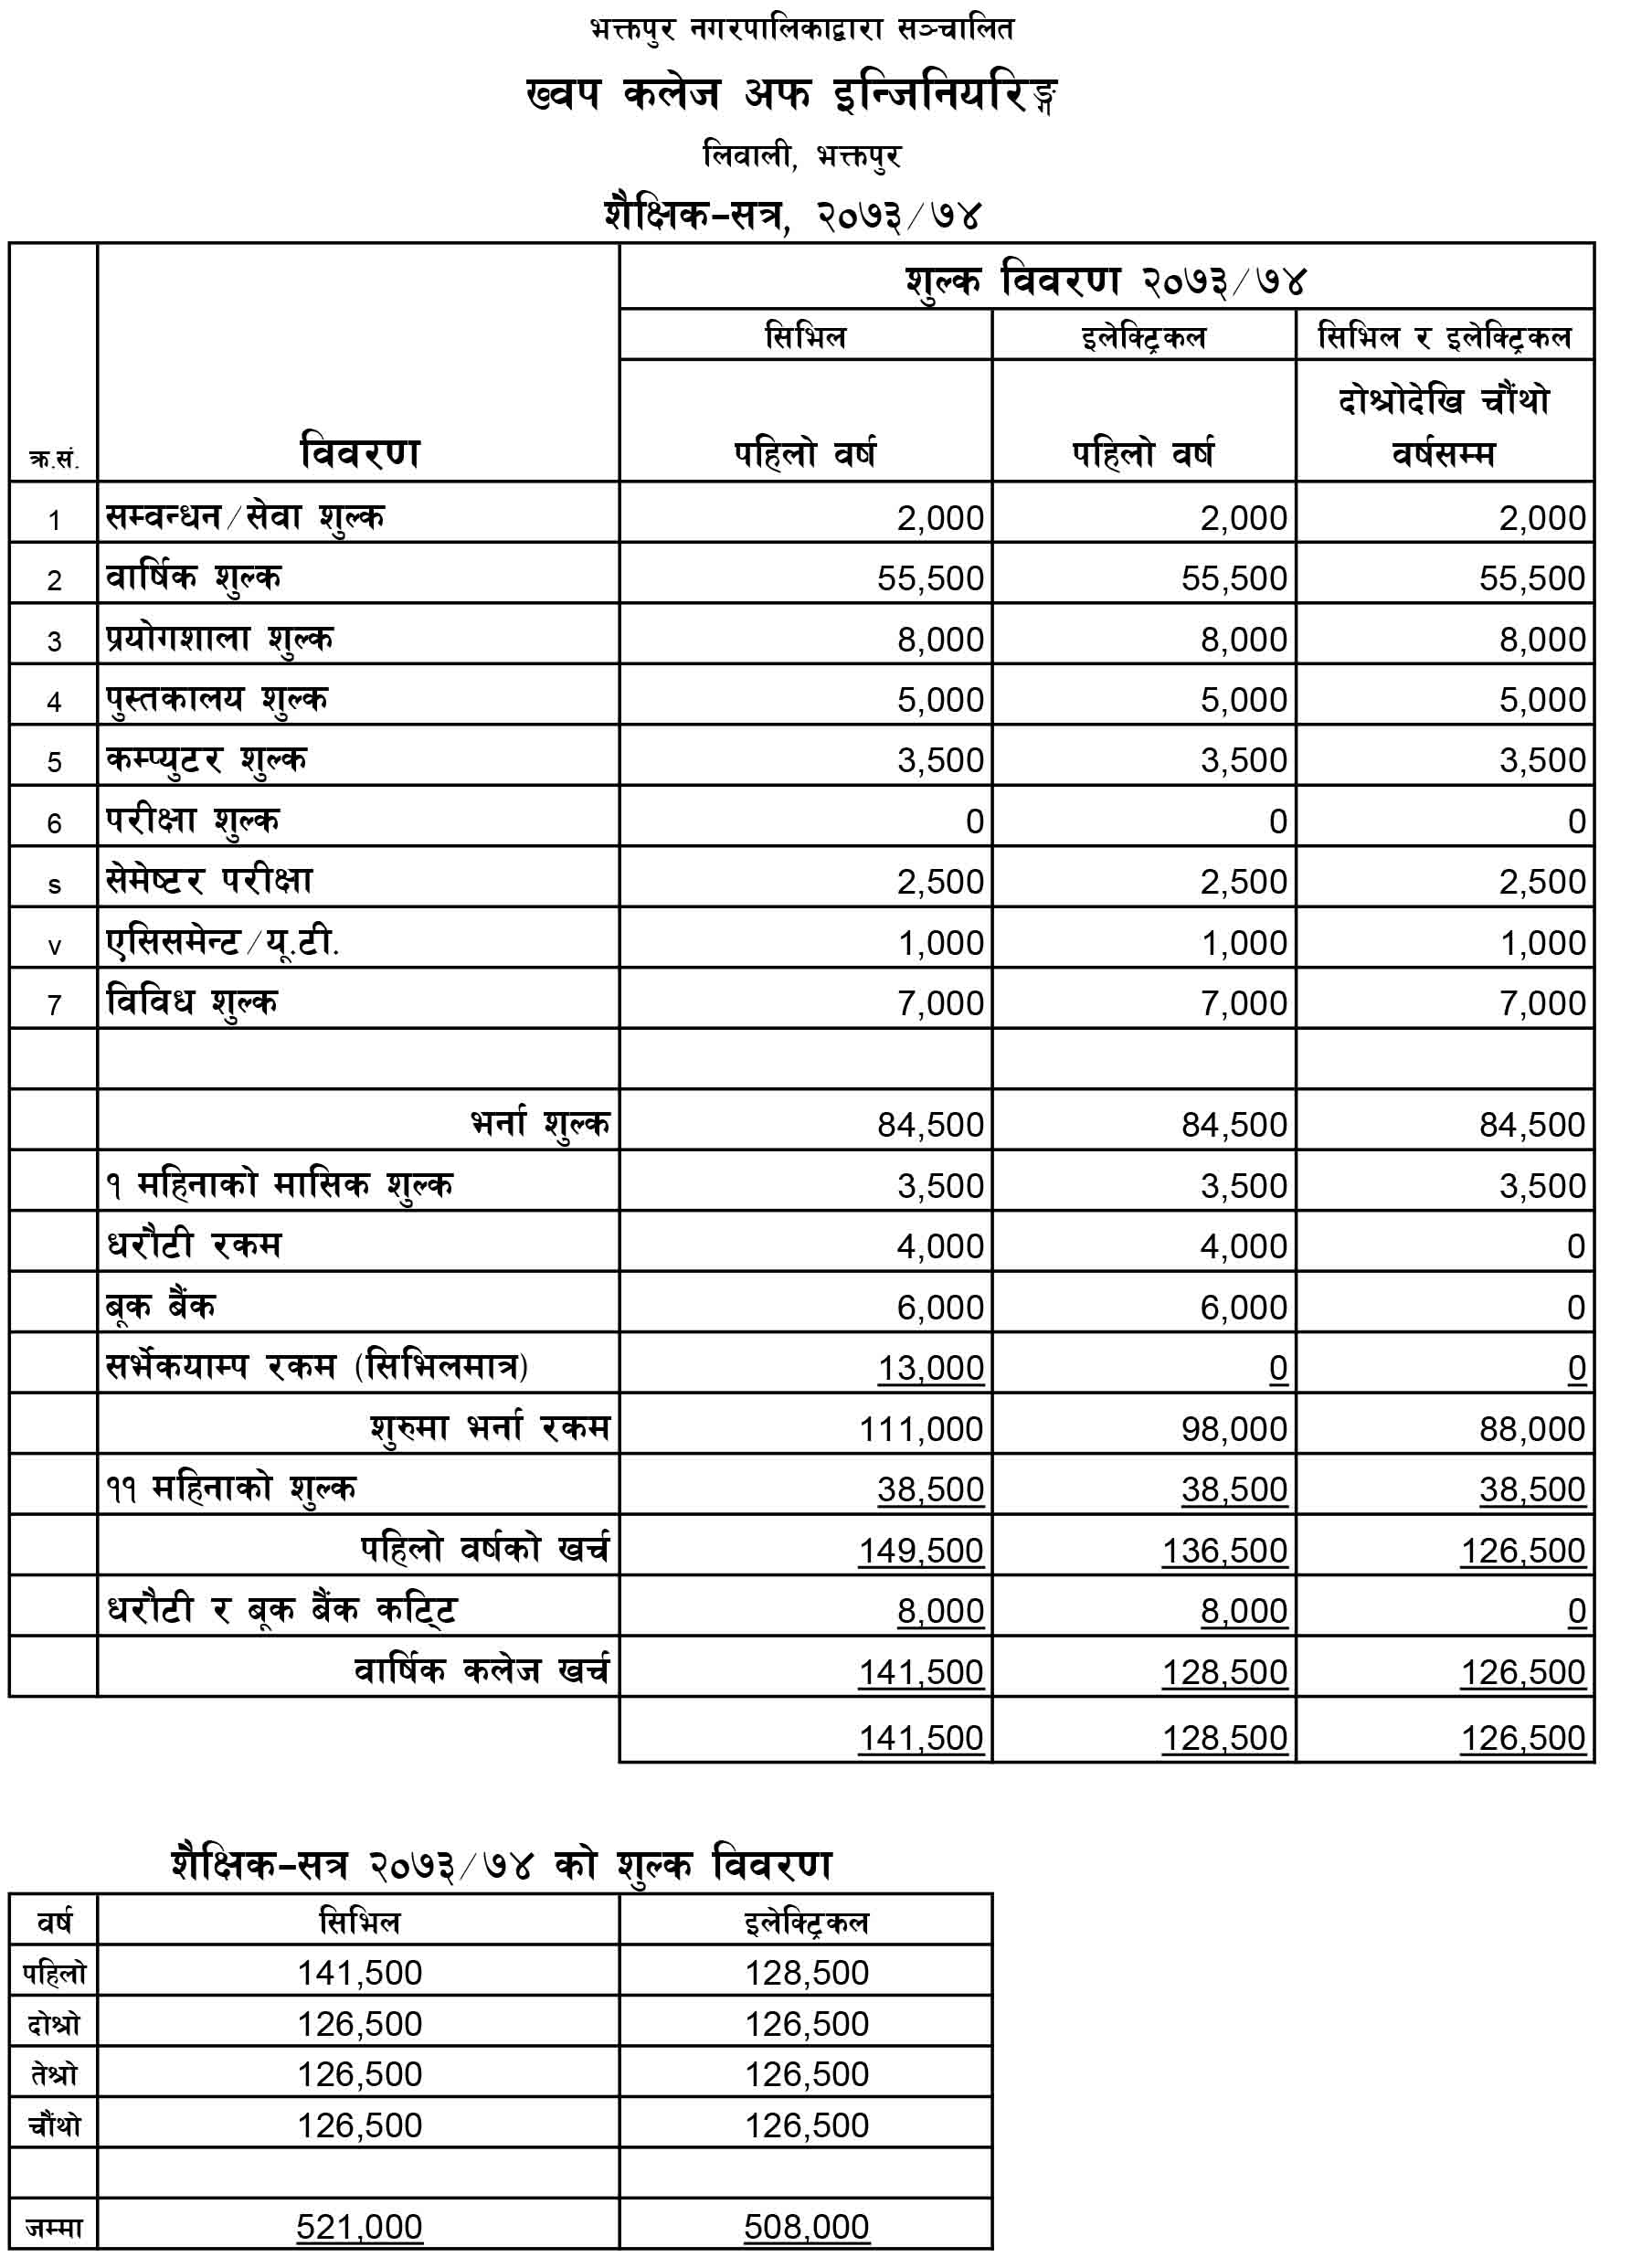 Fee Structure - 2073